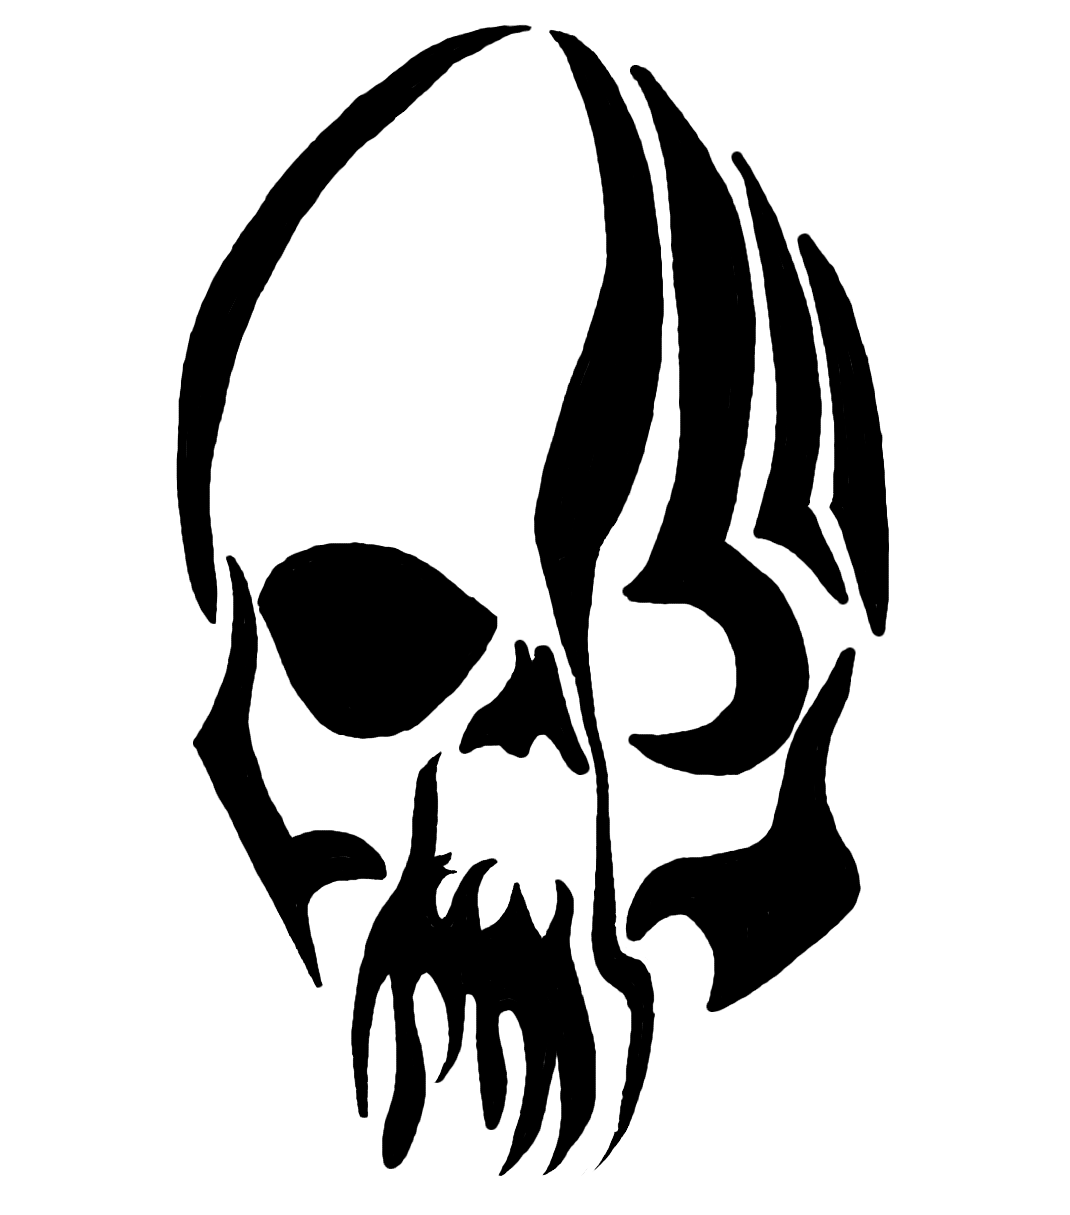 Tribal Skull Tattoos Png image #19371